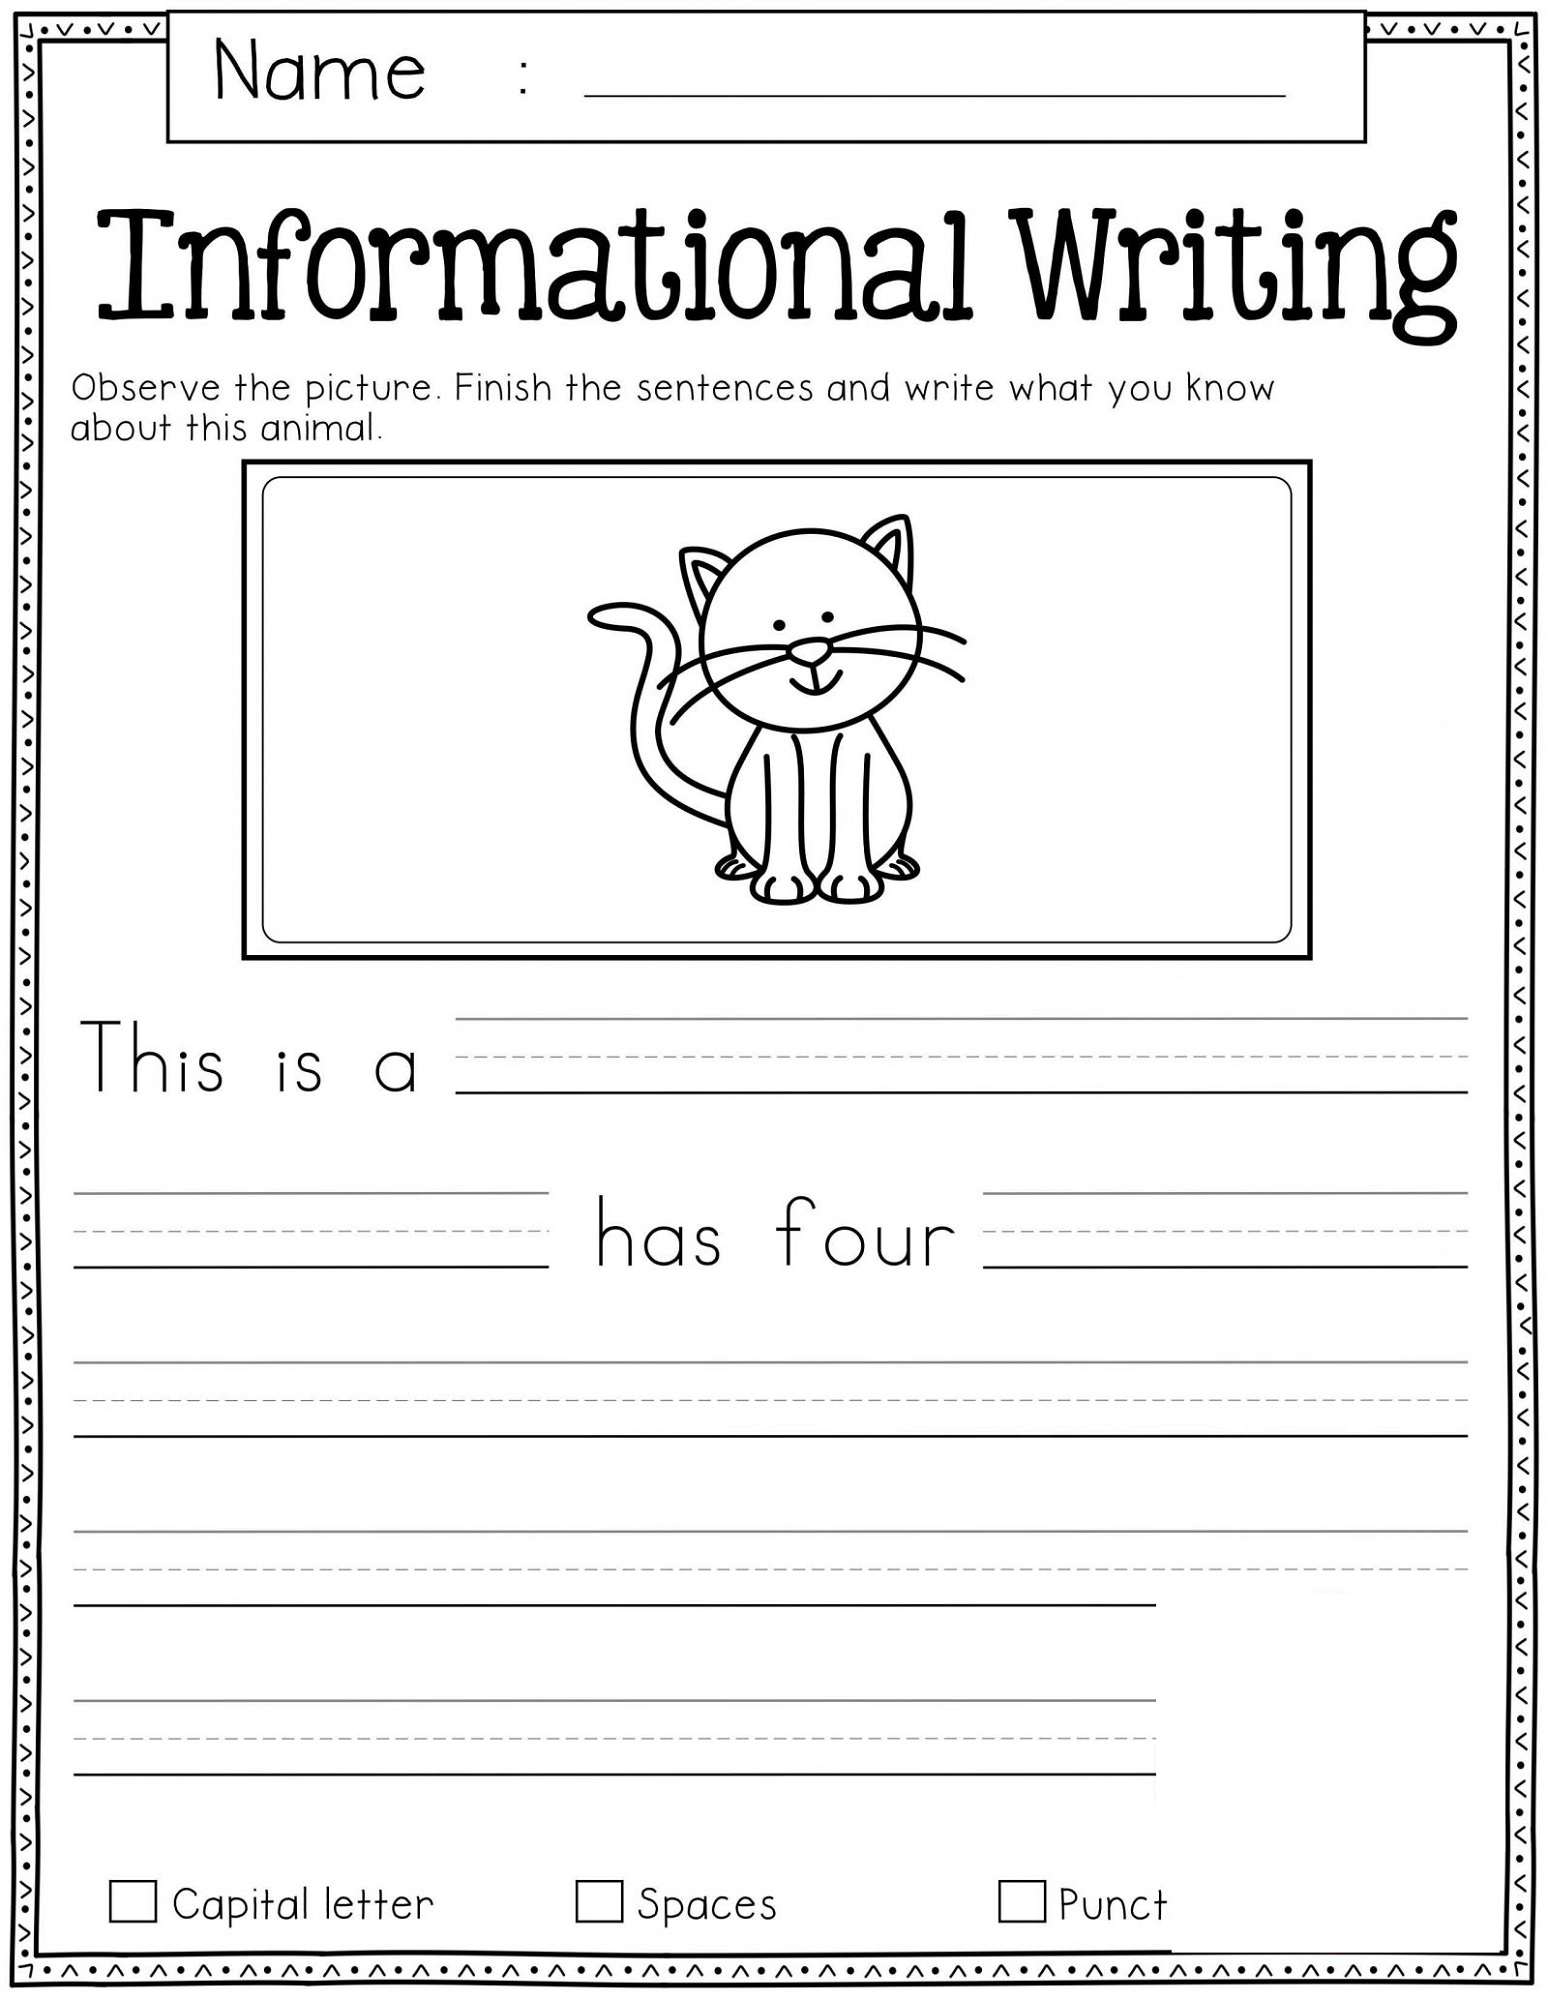 Free Homework Worksheets For All Ages